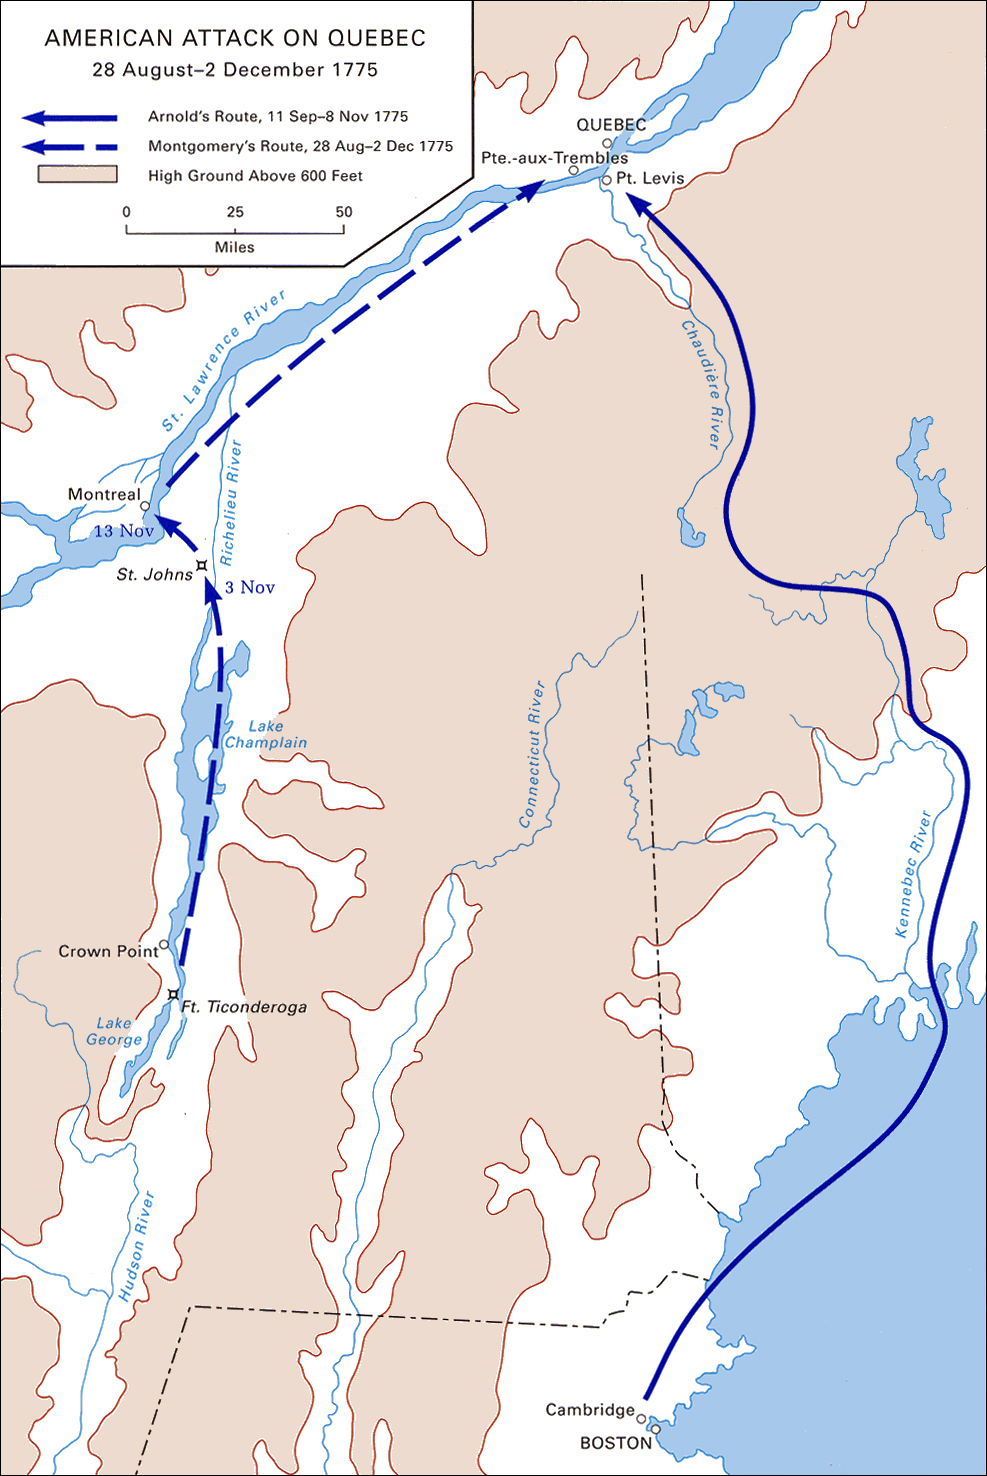 American Attack On Quebec 28 August 2 December 1775 Map 4